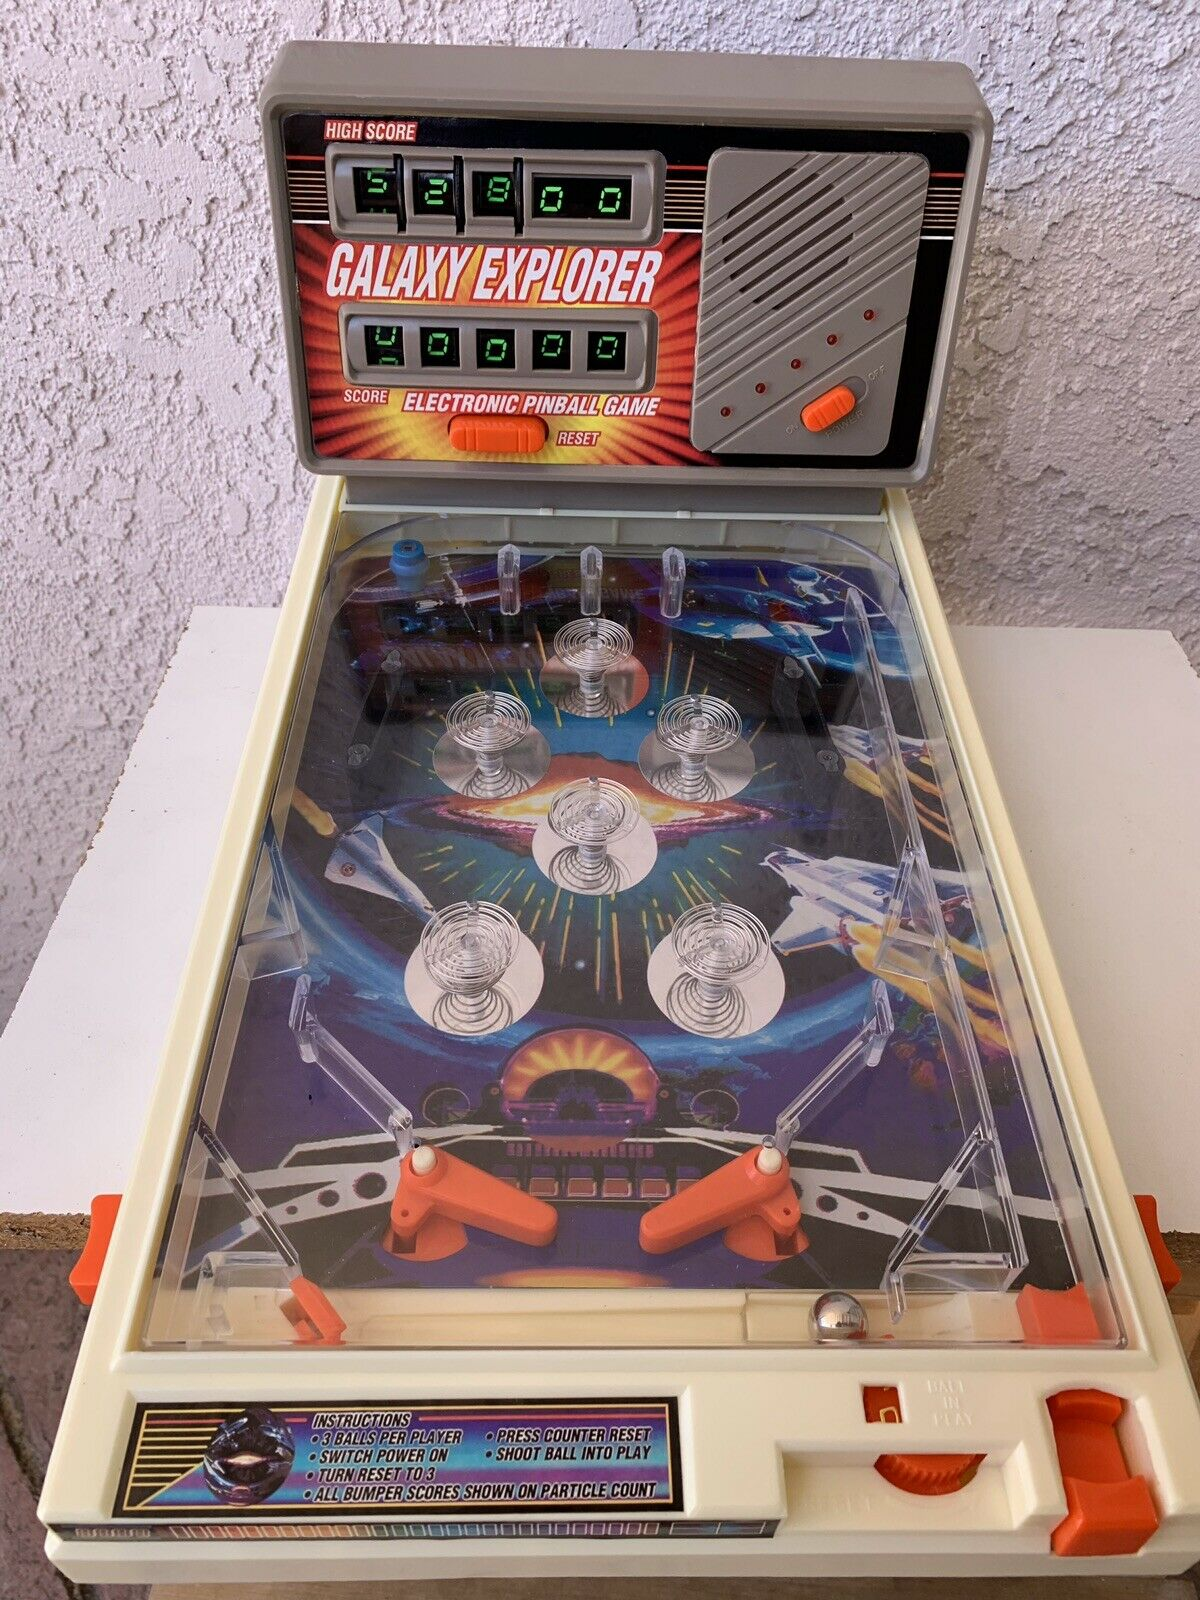 Vintage Galaxy Explorer Electronic Pinball Game